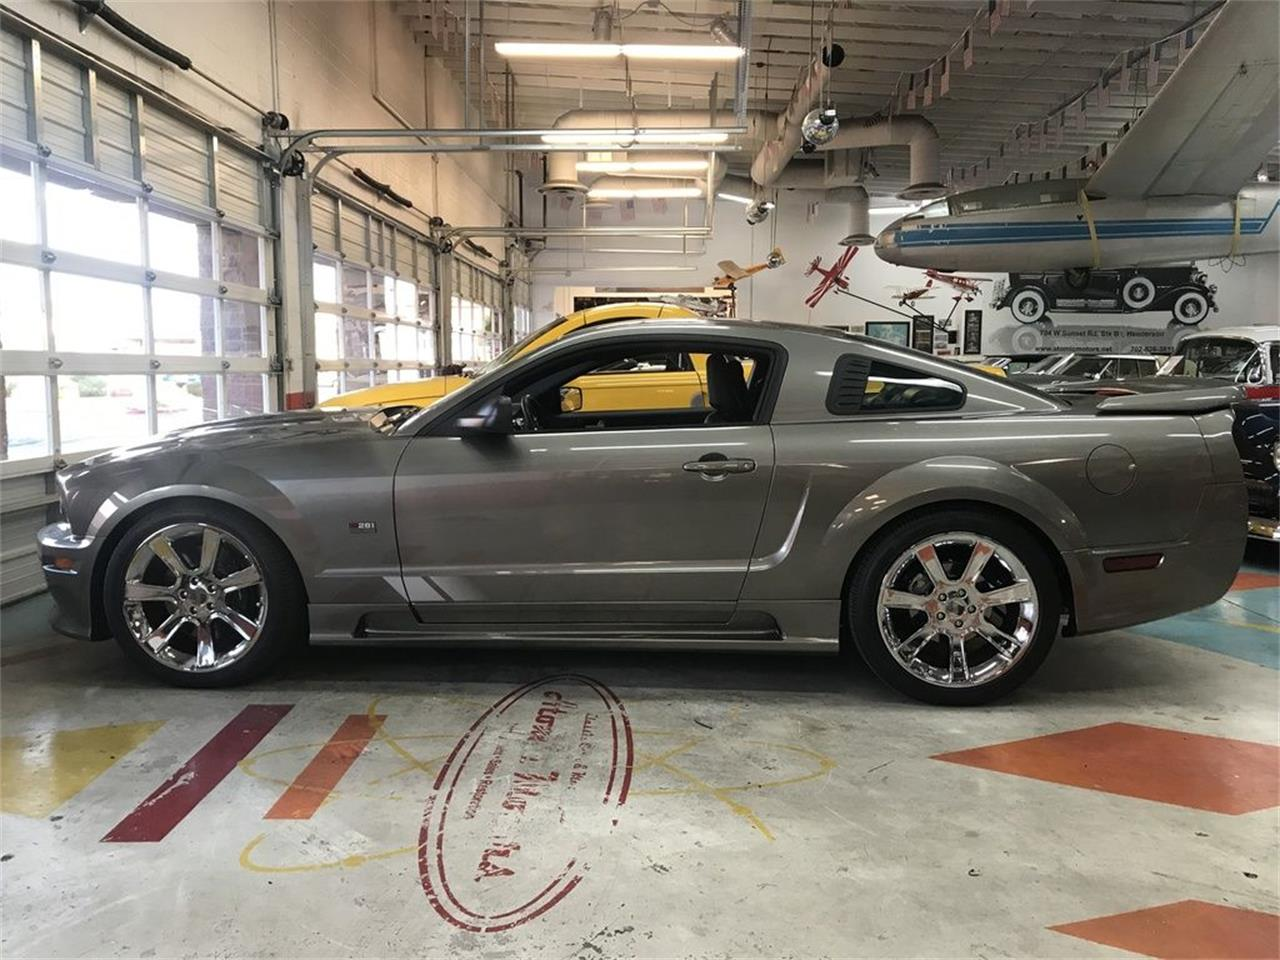 2005 Ford Mustang (Saleen) (CC-1389913) for sale in Henderson, Nevada